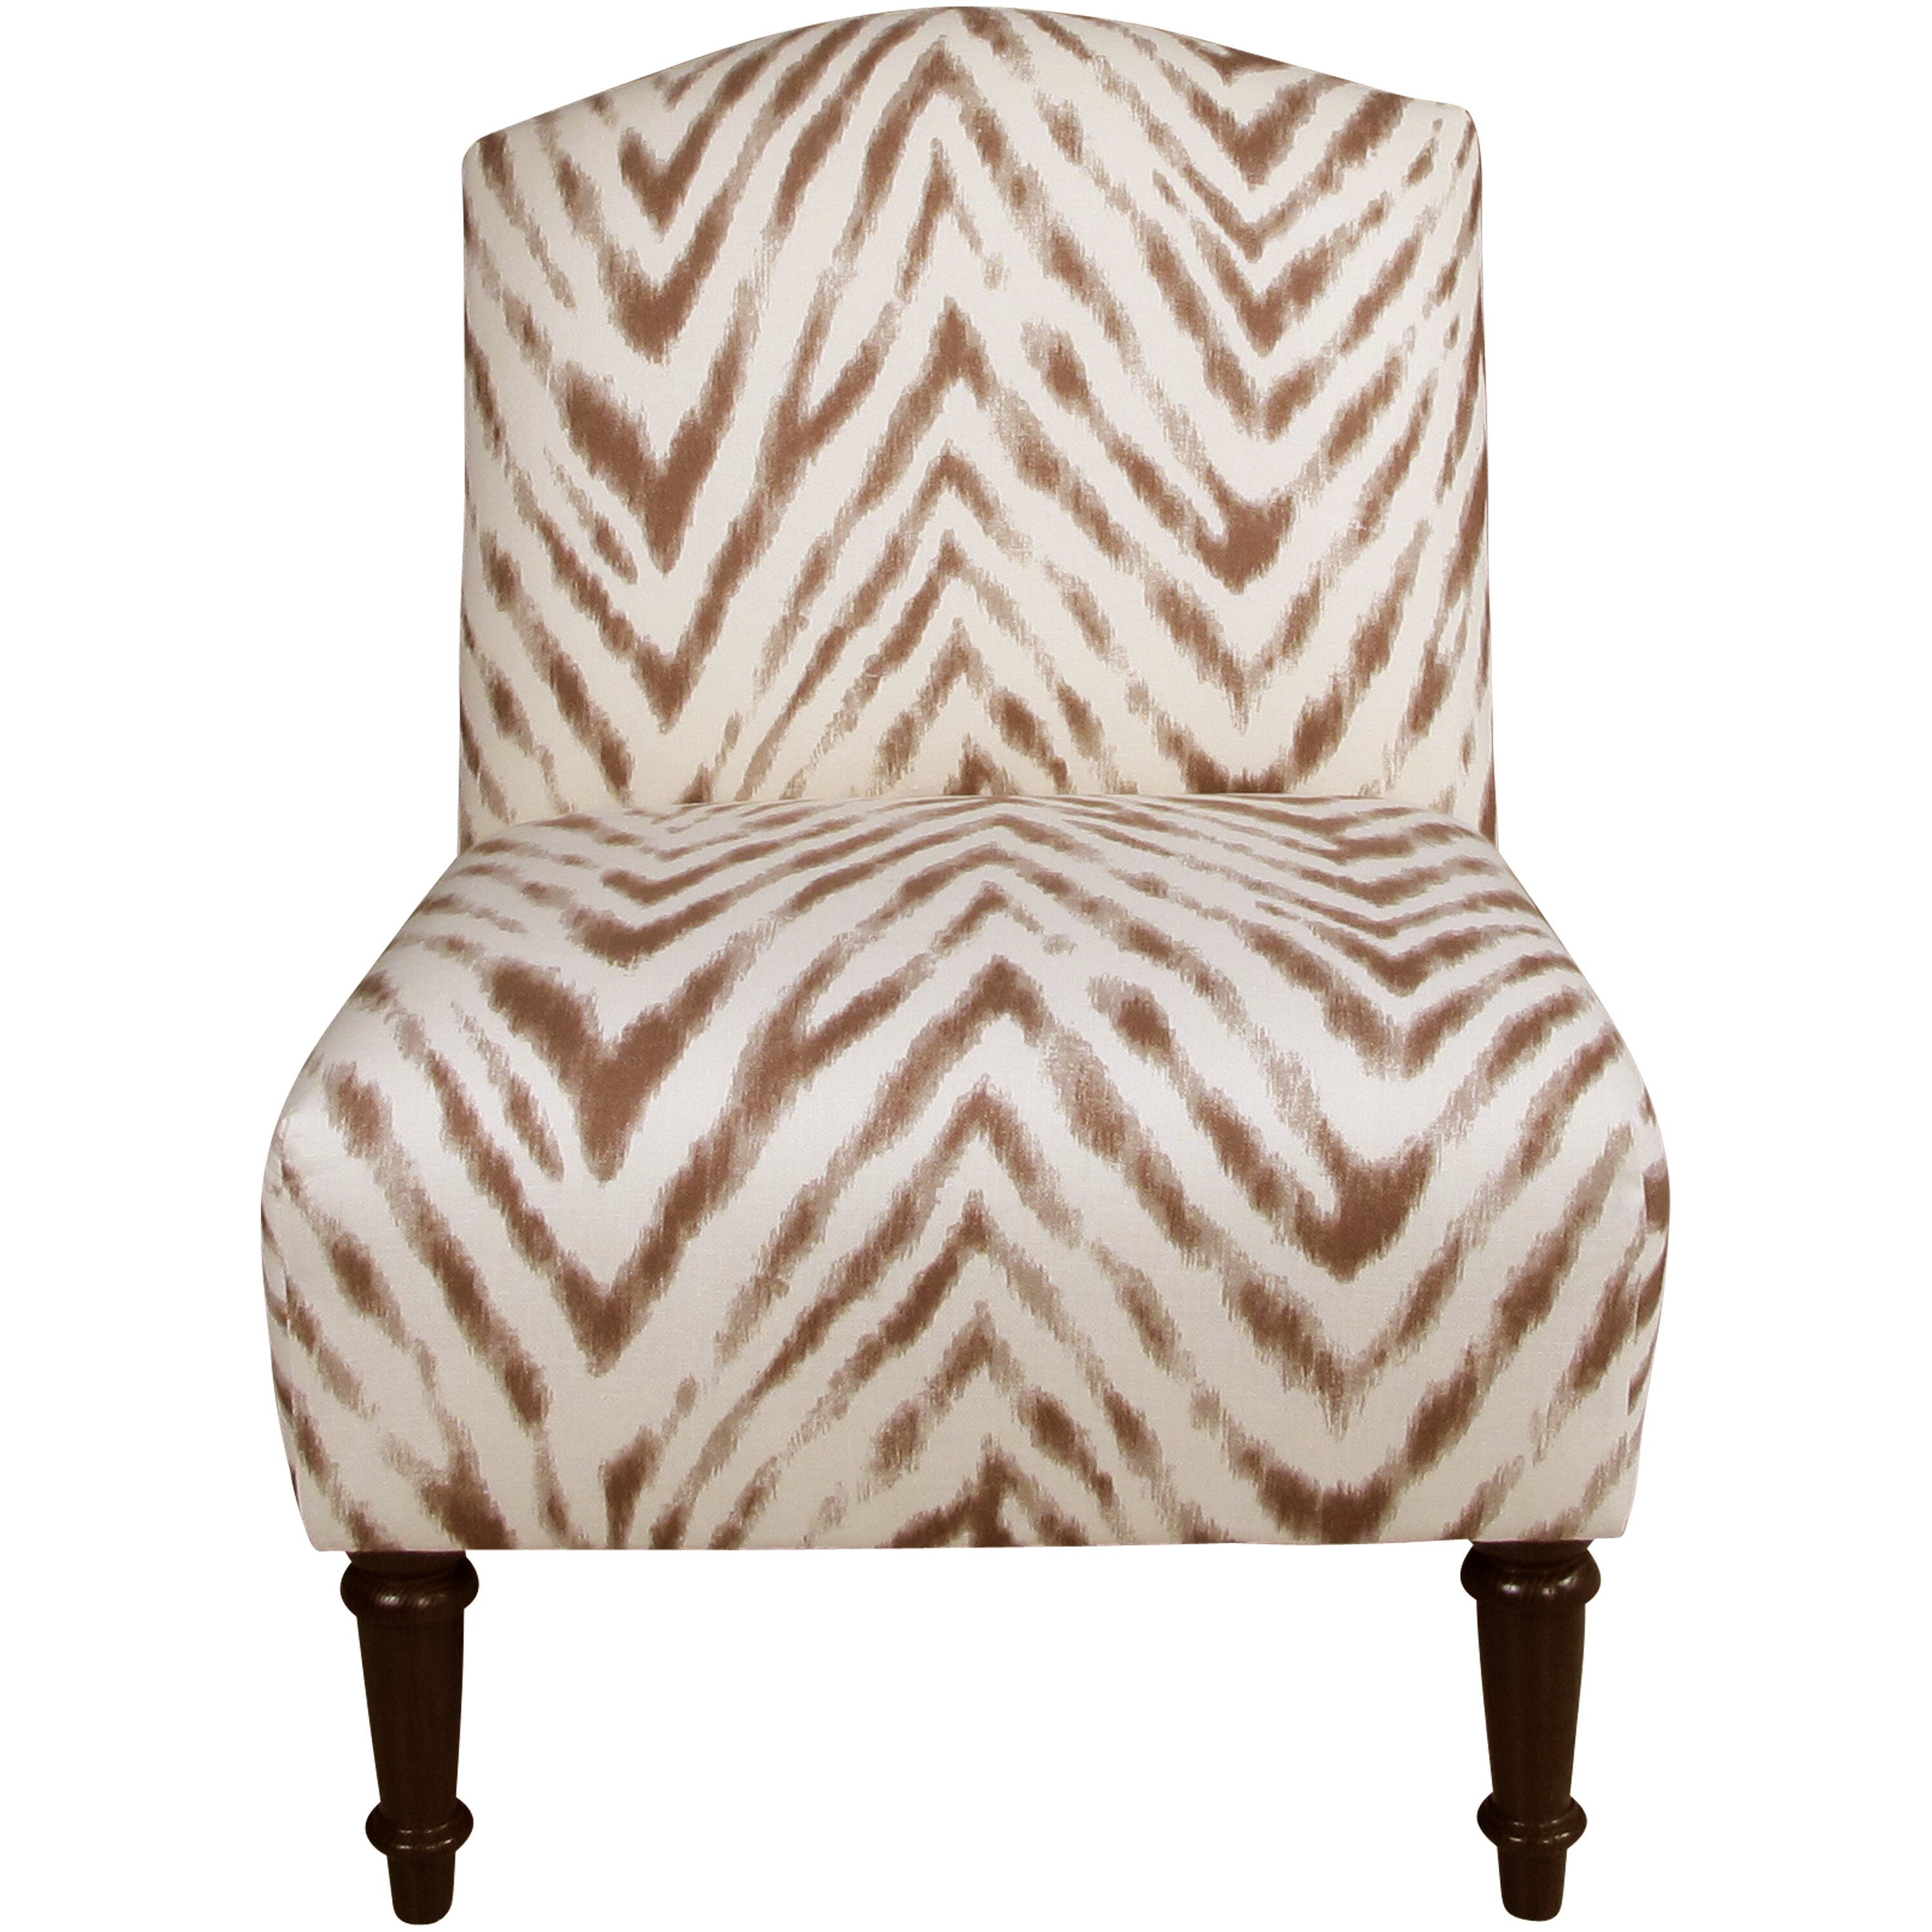 Leopard Print Slipper Chair Powell Slipper Zebra Print